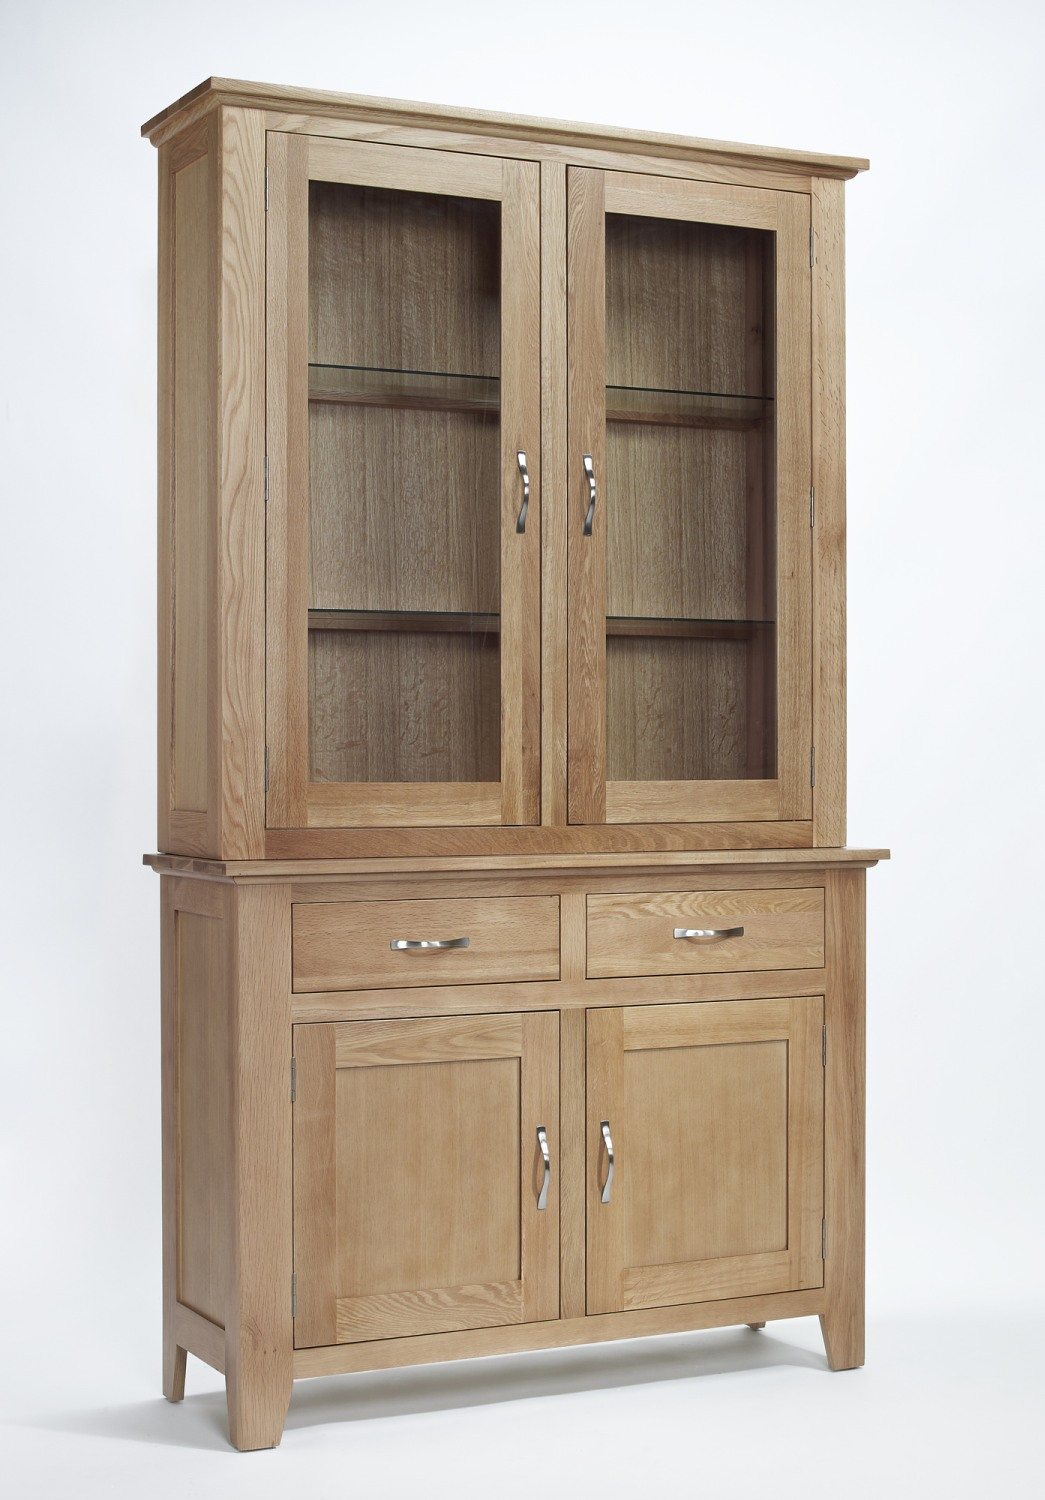 compton solid oak furniture dining room dresser display cabinet